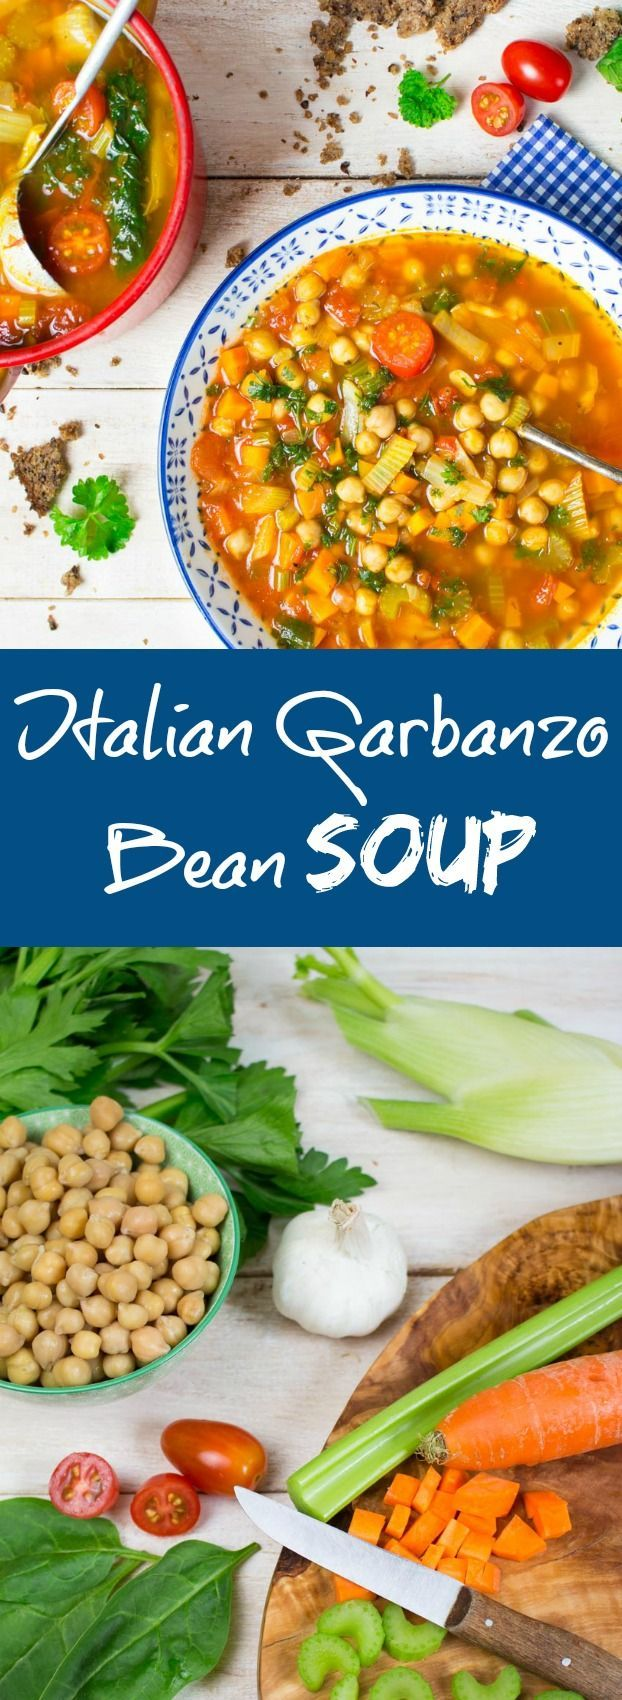 This Italian Garbanzo Bean Soup is super easy to make and packed with flavor and nutrients! #vegan #soup #garbanzo #chickpeas #healthy #Italiansoup